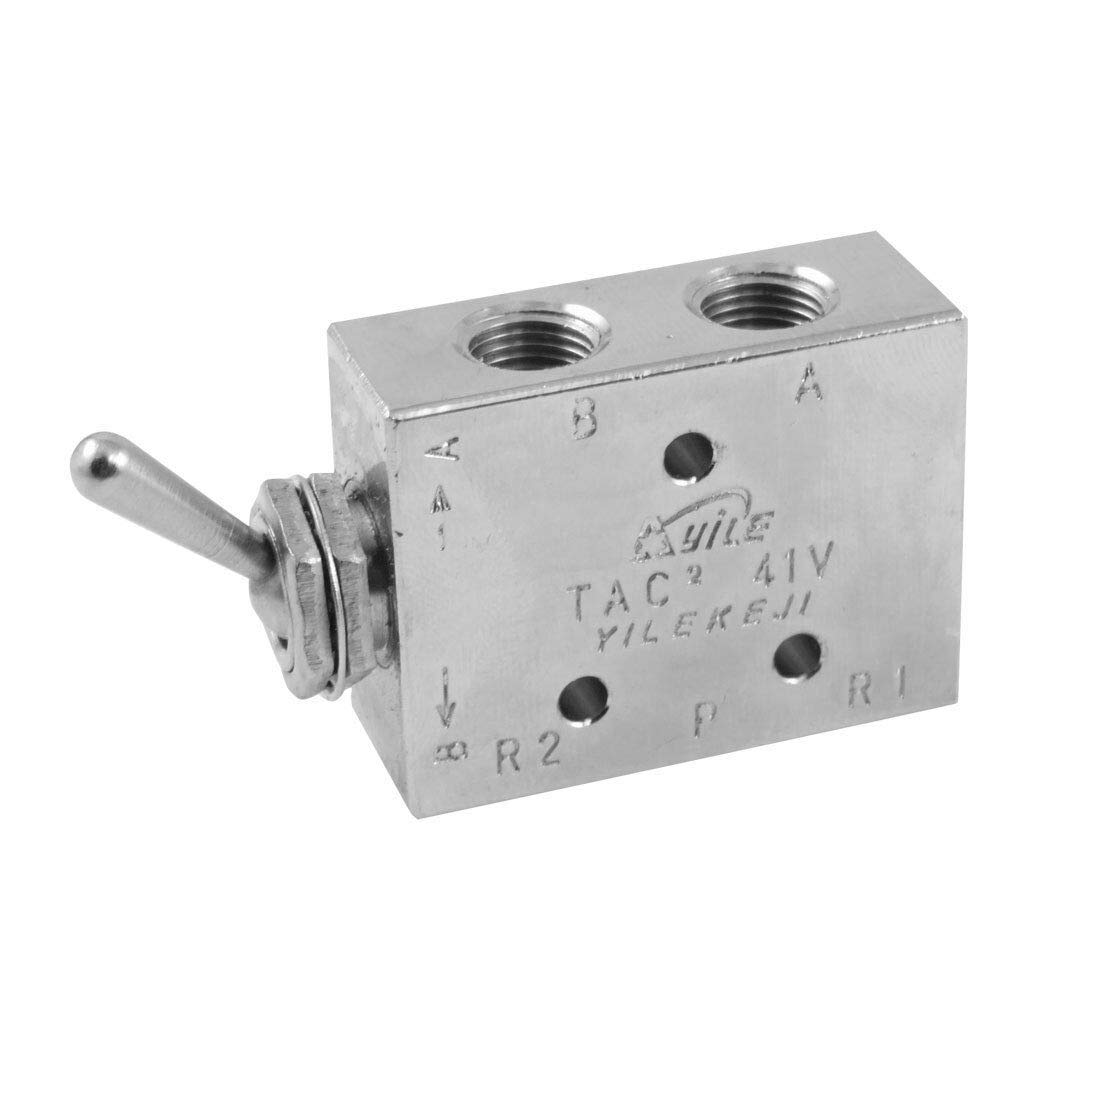 Silver Tone Air Pneumatic 2 Position 5 Way Toggle Switch Valve TAC2-41V by Balance World Inc